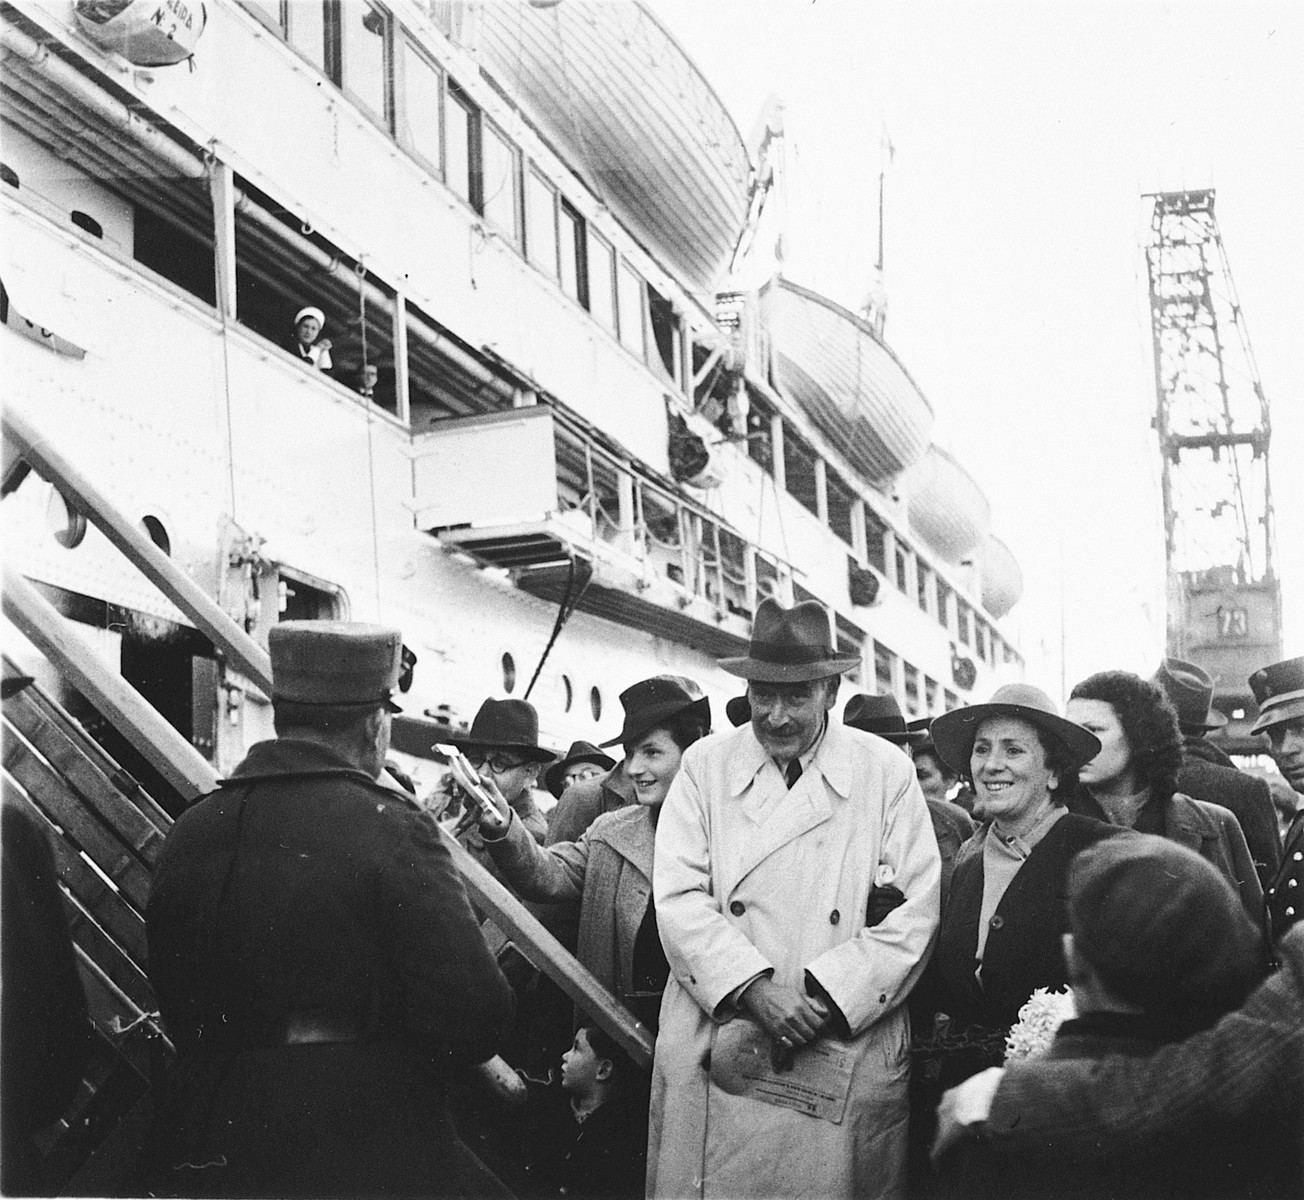 Jewish refugees prepare to board the SS Serpa Pinto in the port of Lisbon.